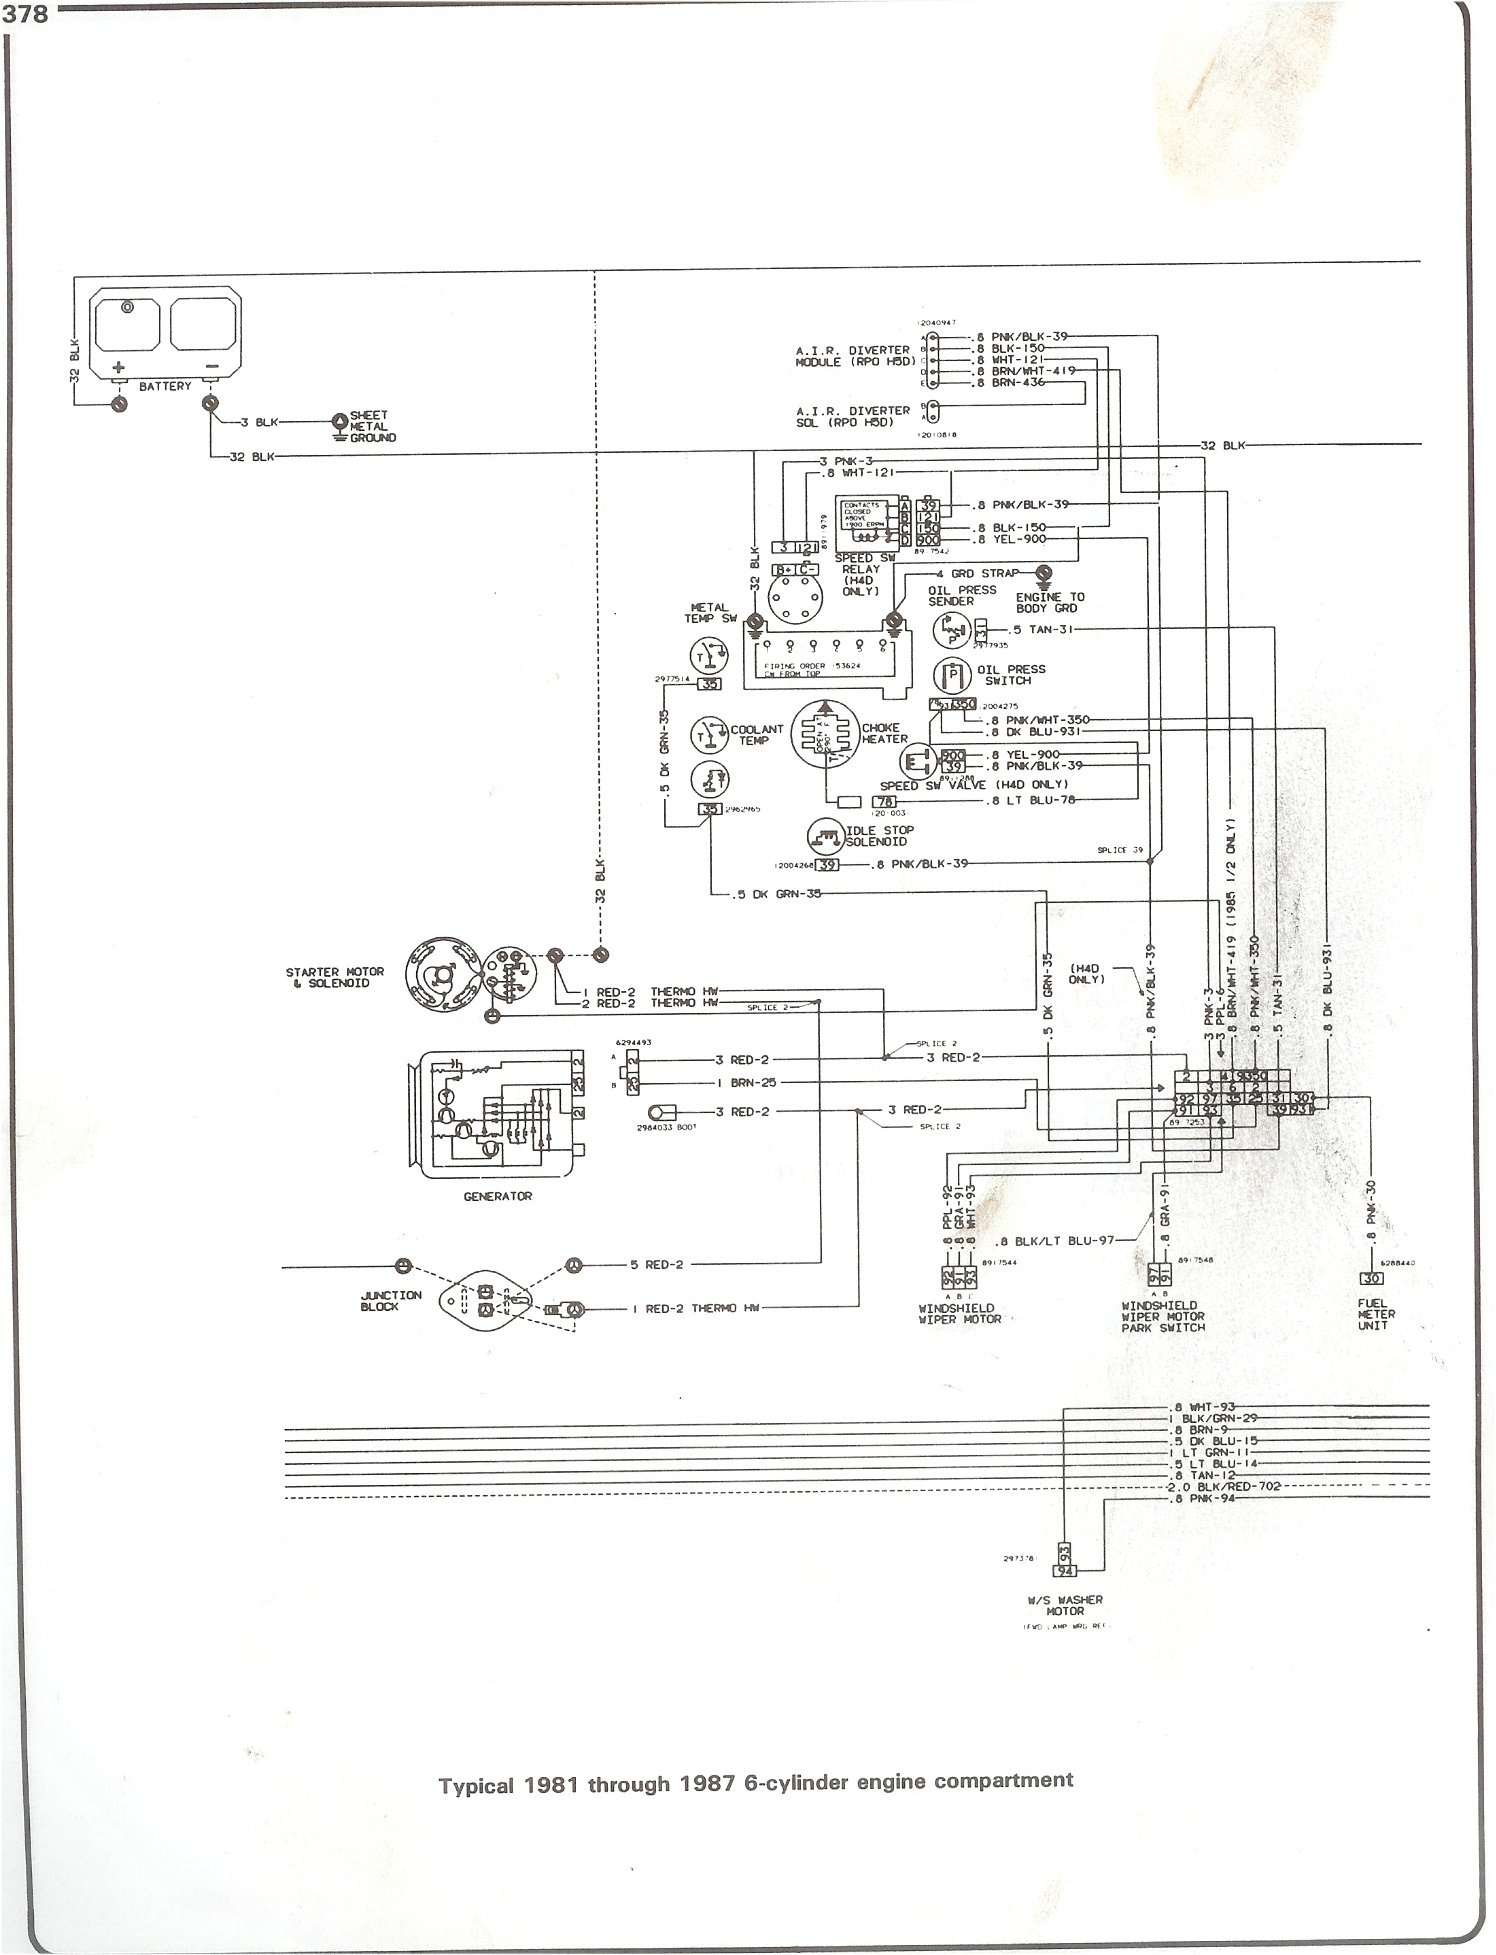 Plete 7387 Wiring Diagrams. 8187 I6 Engine Partment. Chevrolet. 1978 Chevy 350 Engine Schematic At Scoala.co